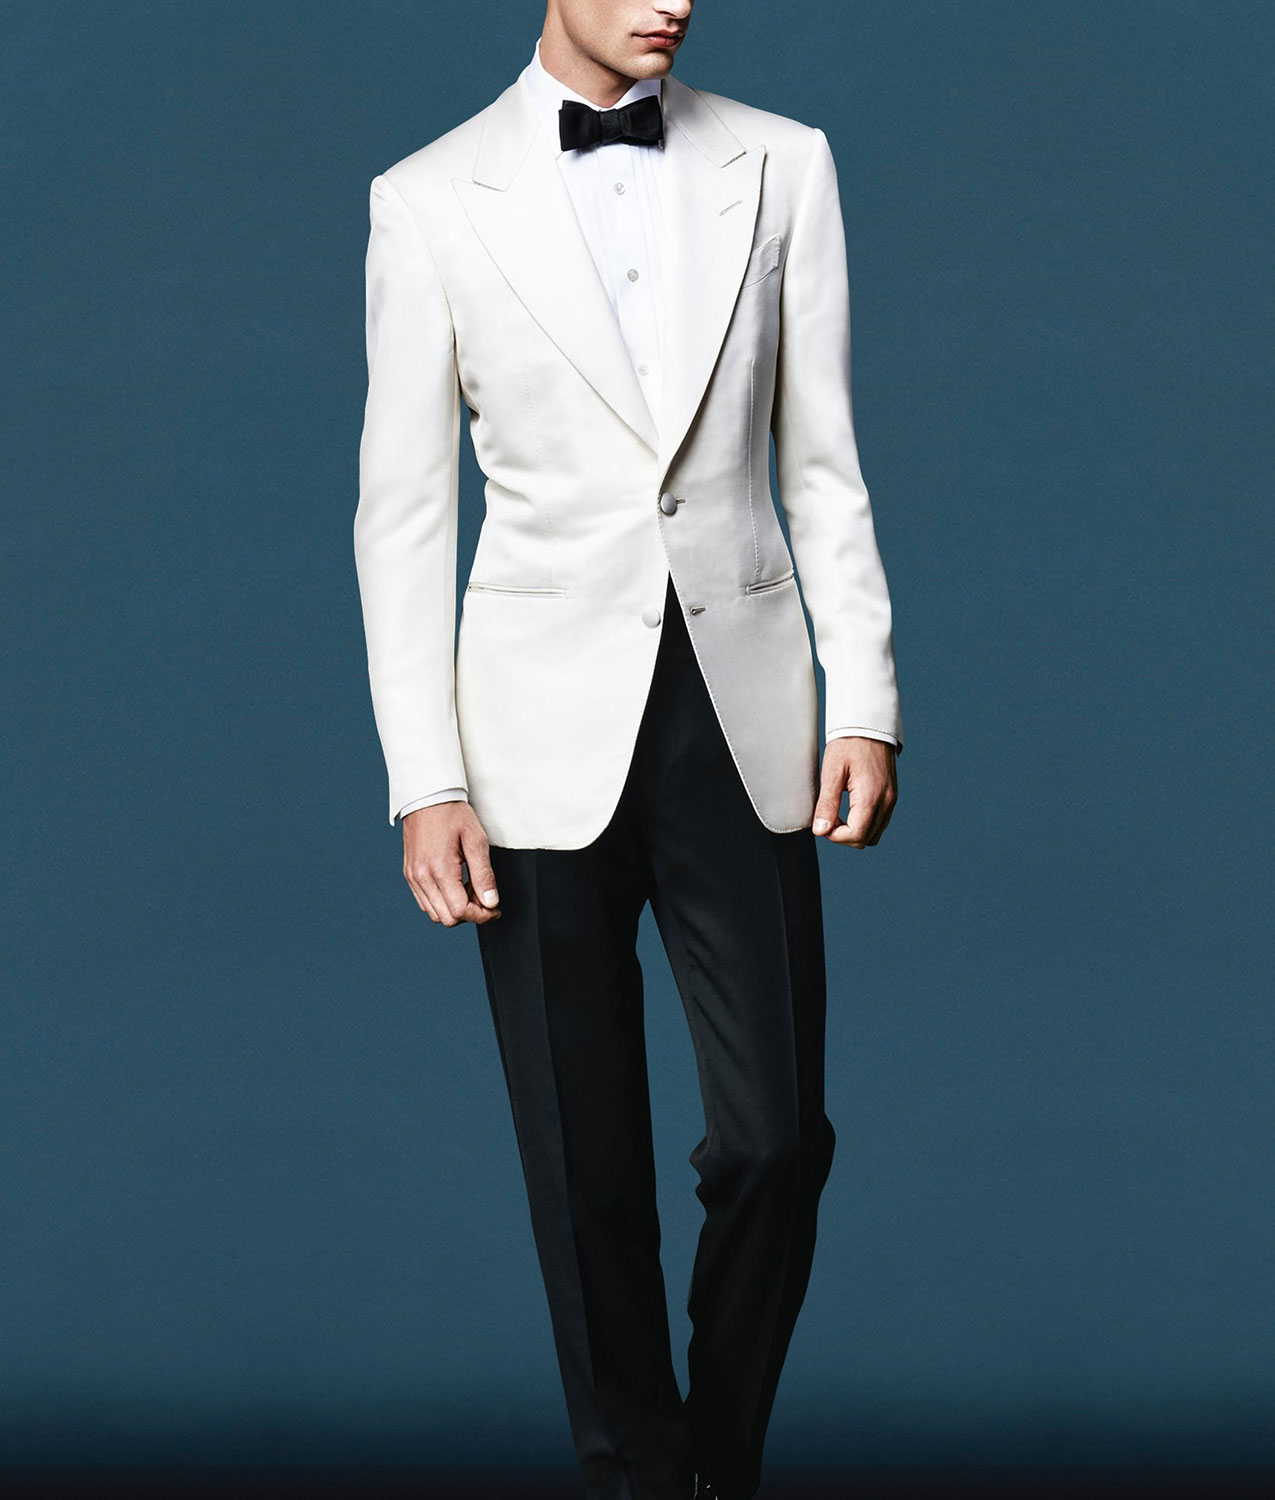 James Bond Spectre Tuxedo Daniel Craig White Ivory Dinner Suit